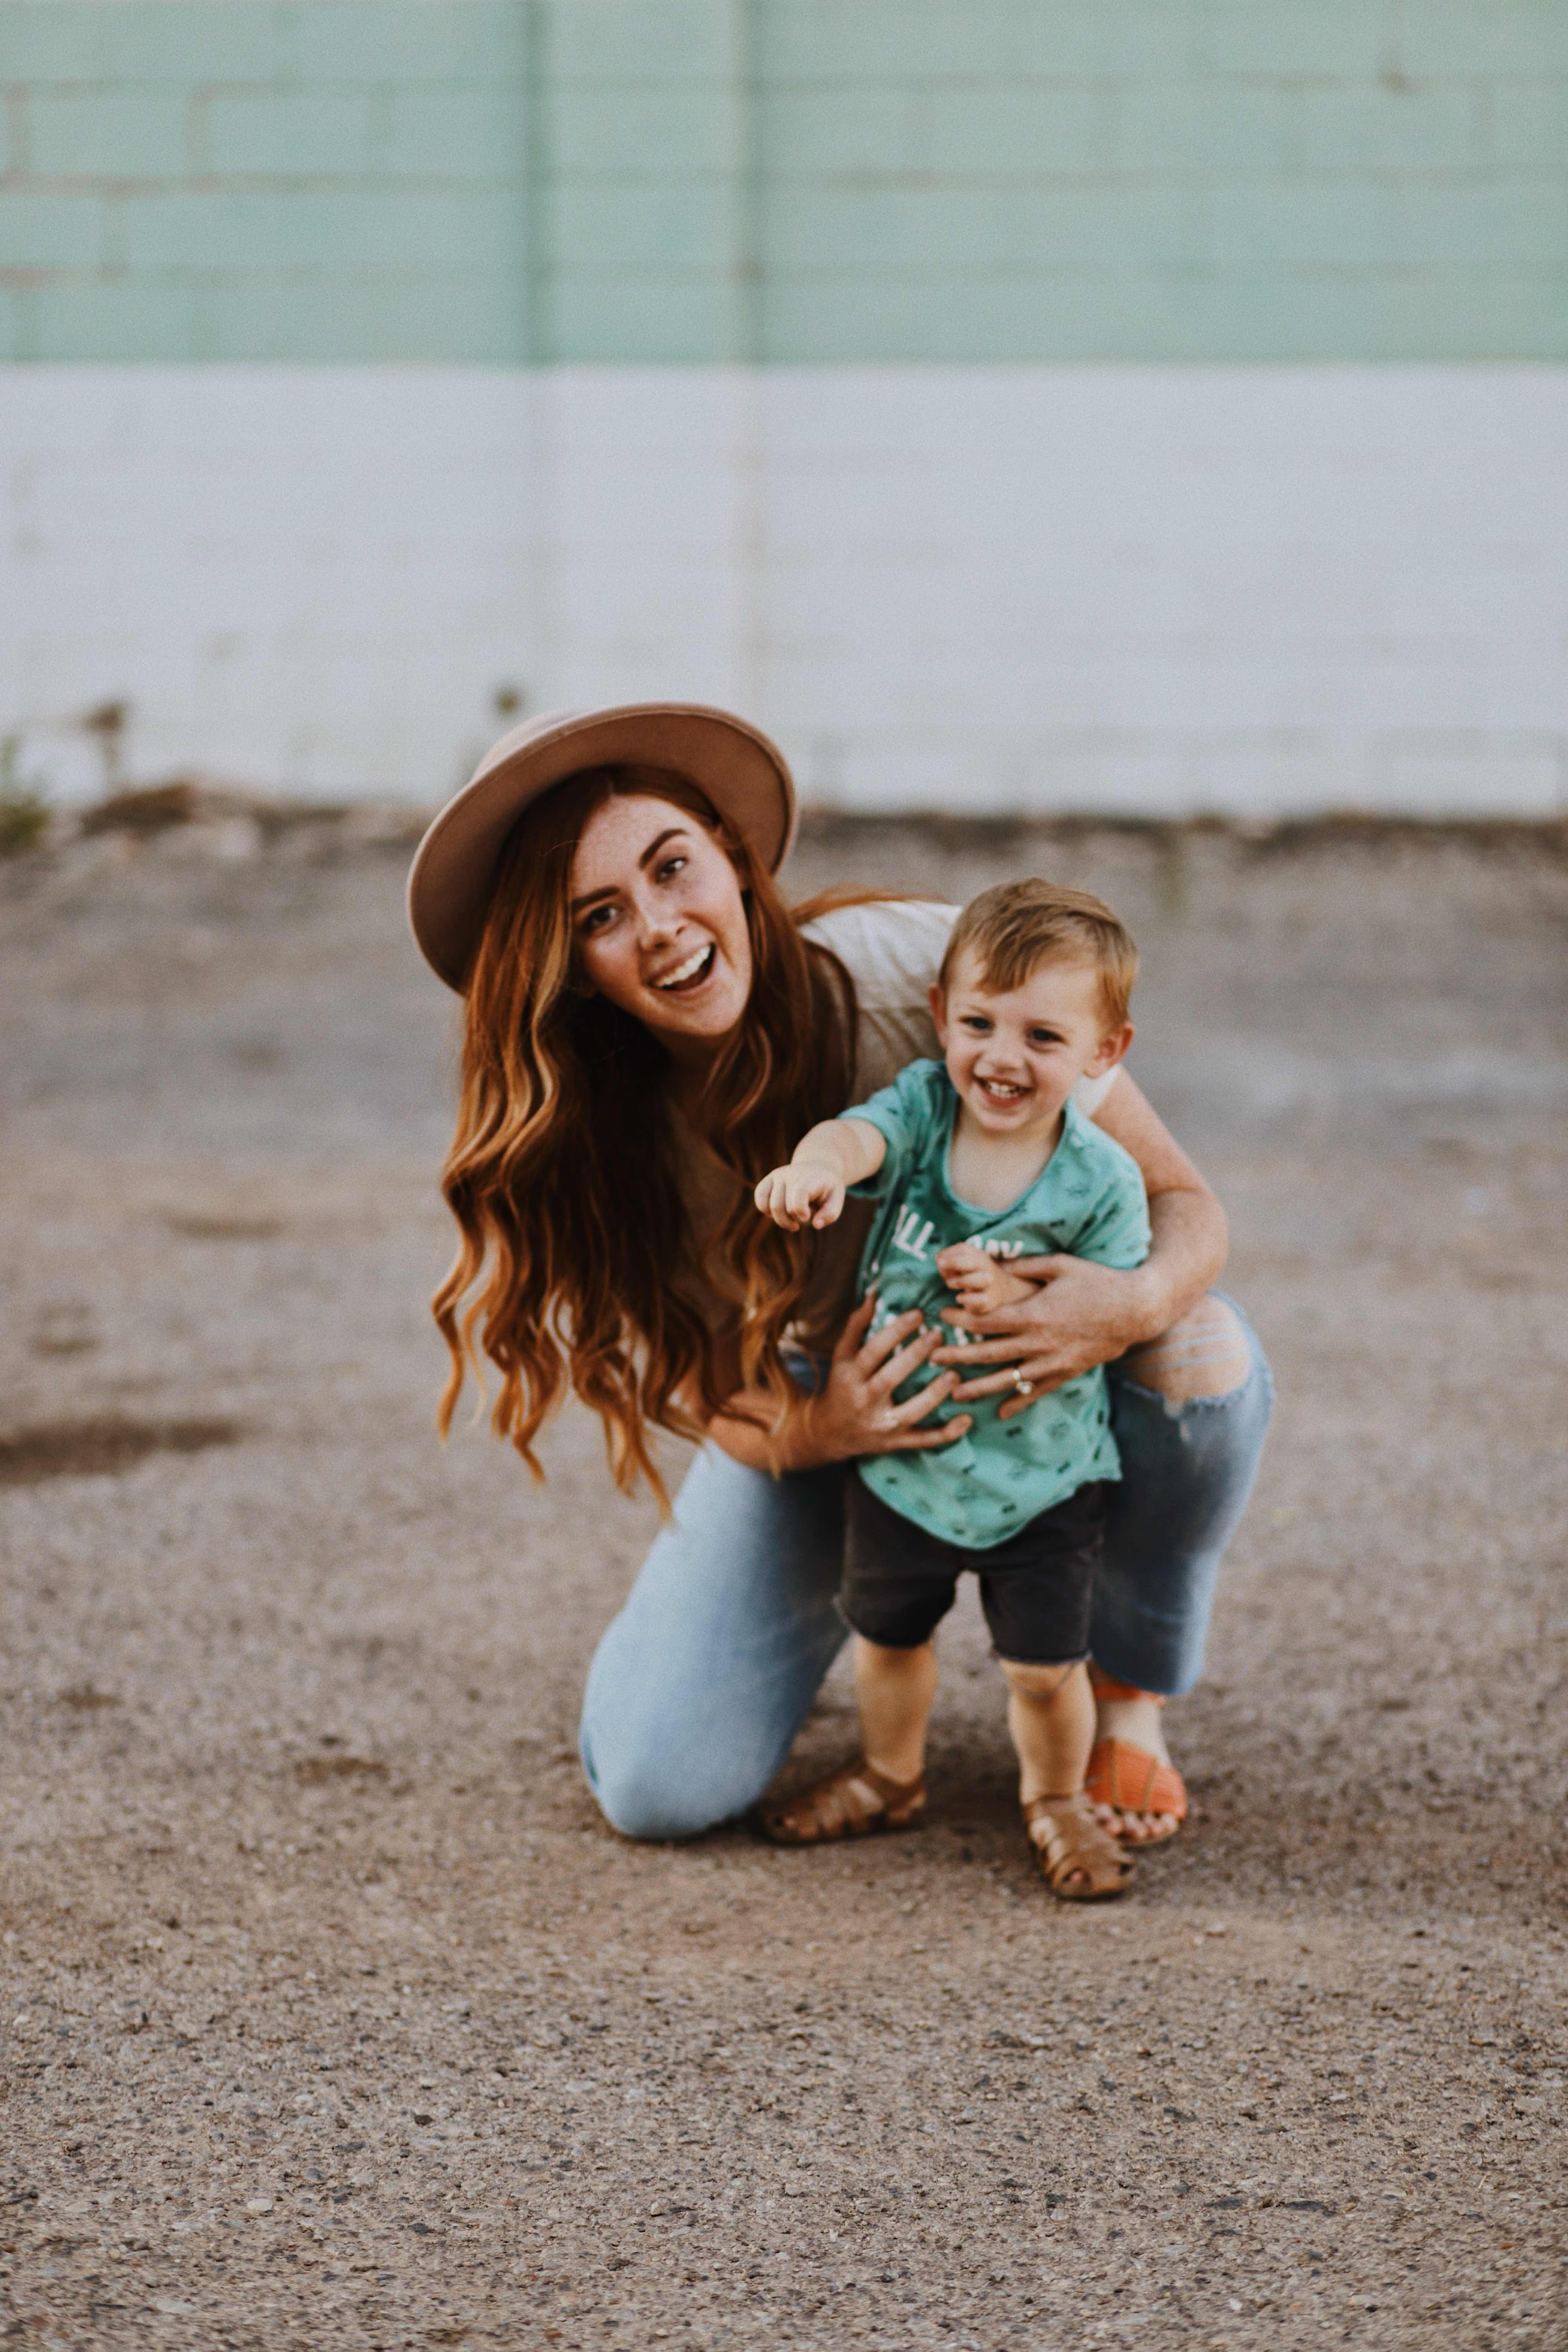 Why I Chose Motherhood in a World Full of Chaos